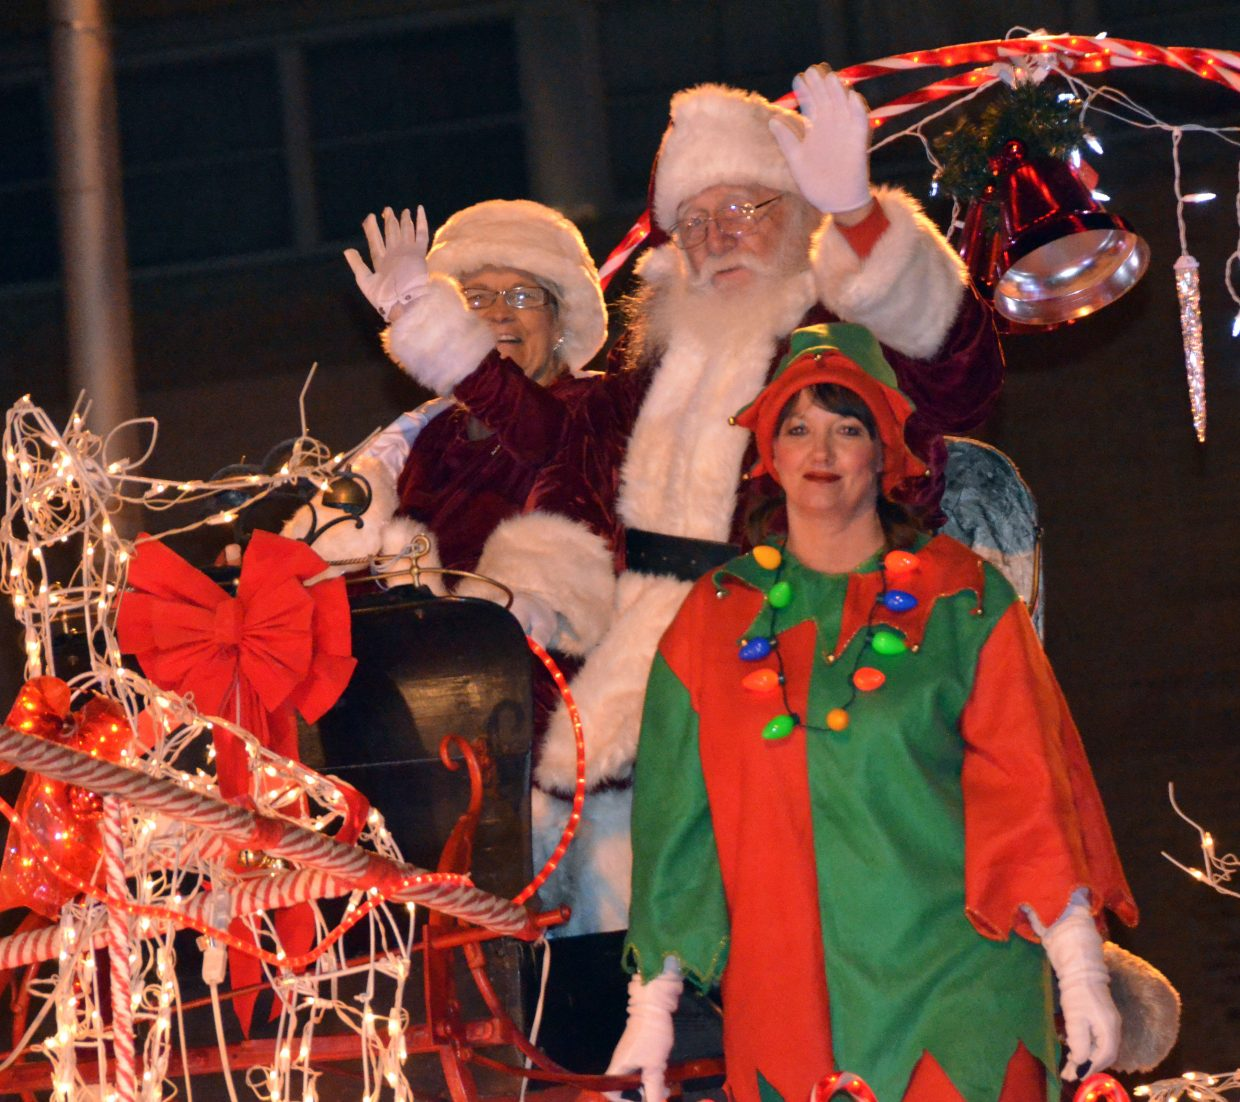 Santa Claus, Mrs. Claus and helpers wave from the final float of the night during Saturday's Parade of Lights.